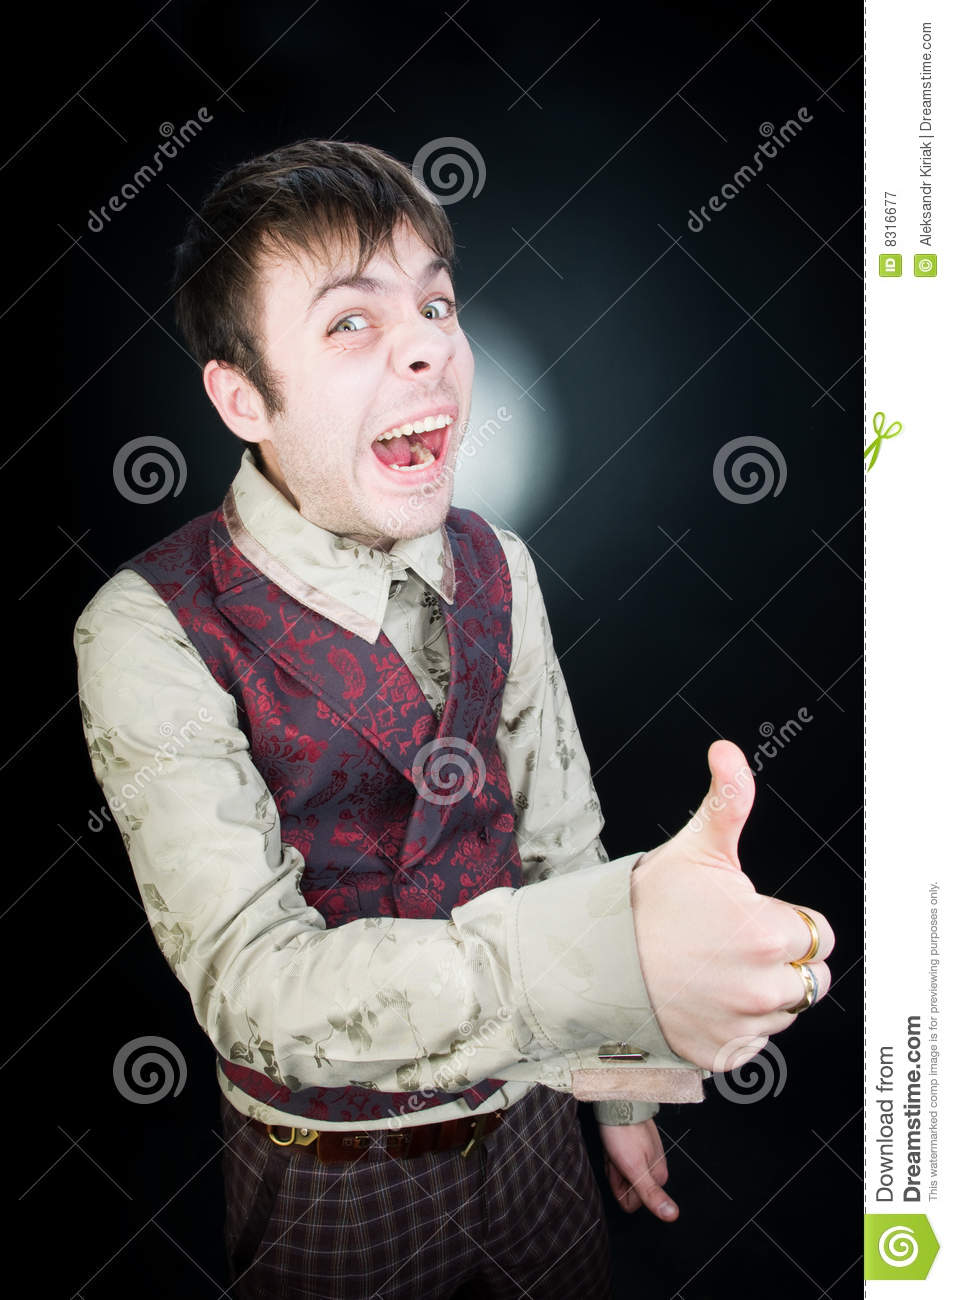 Funny giving man thumbs up